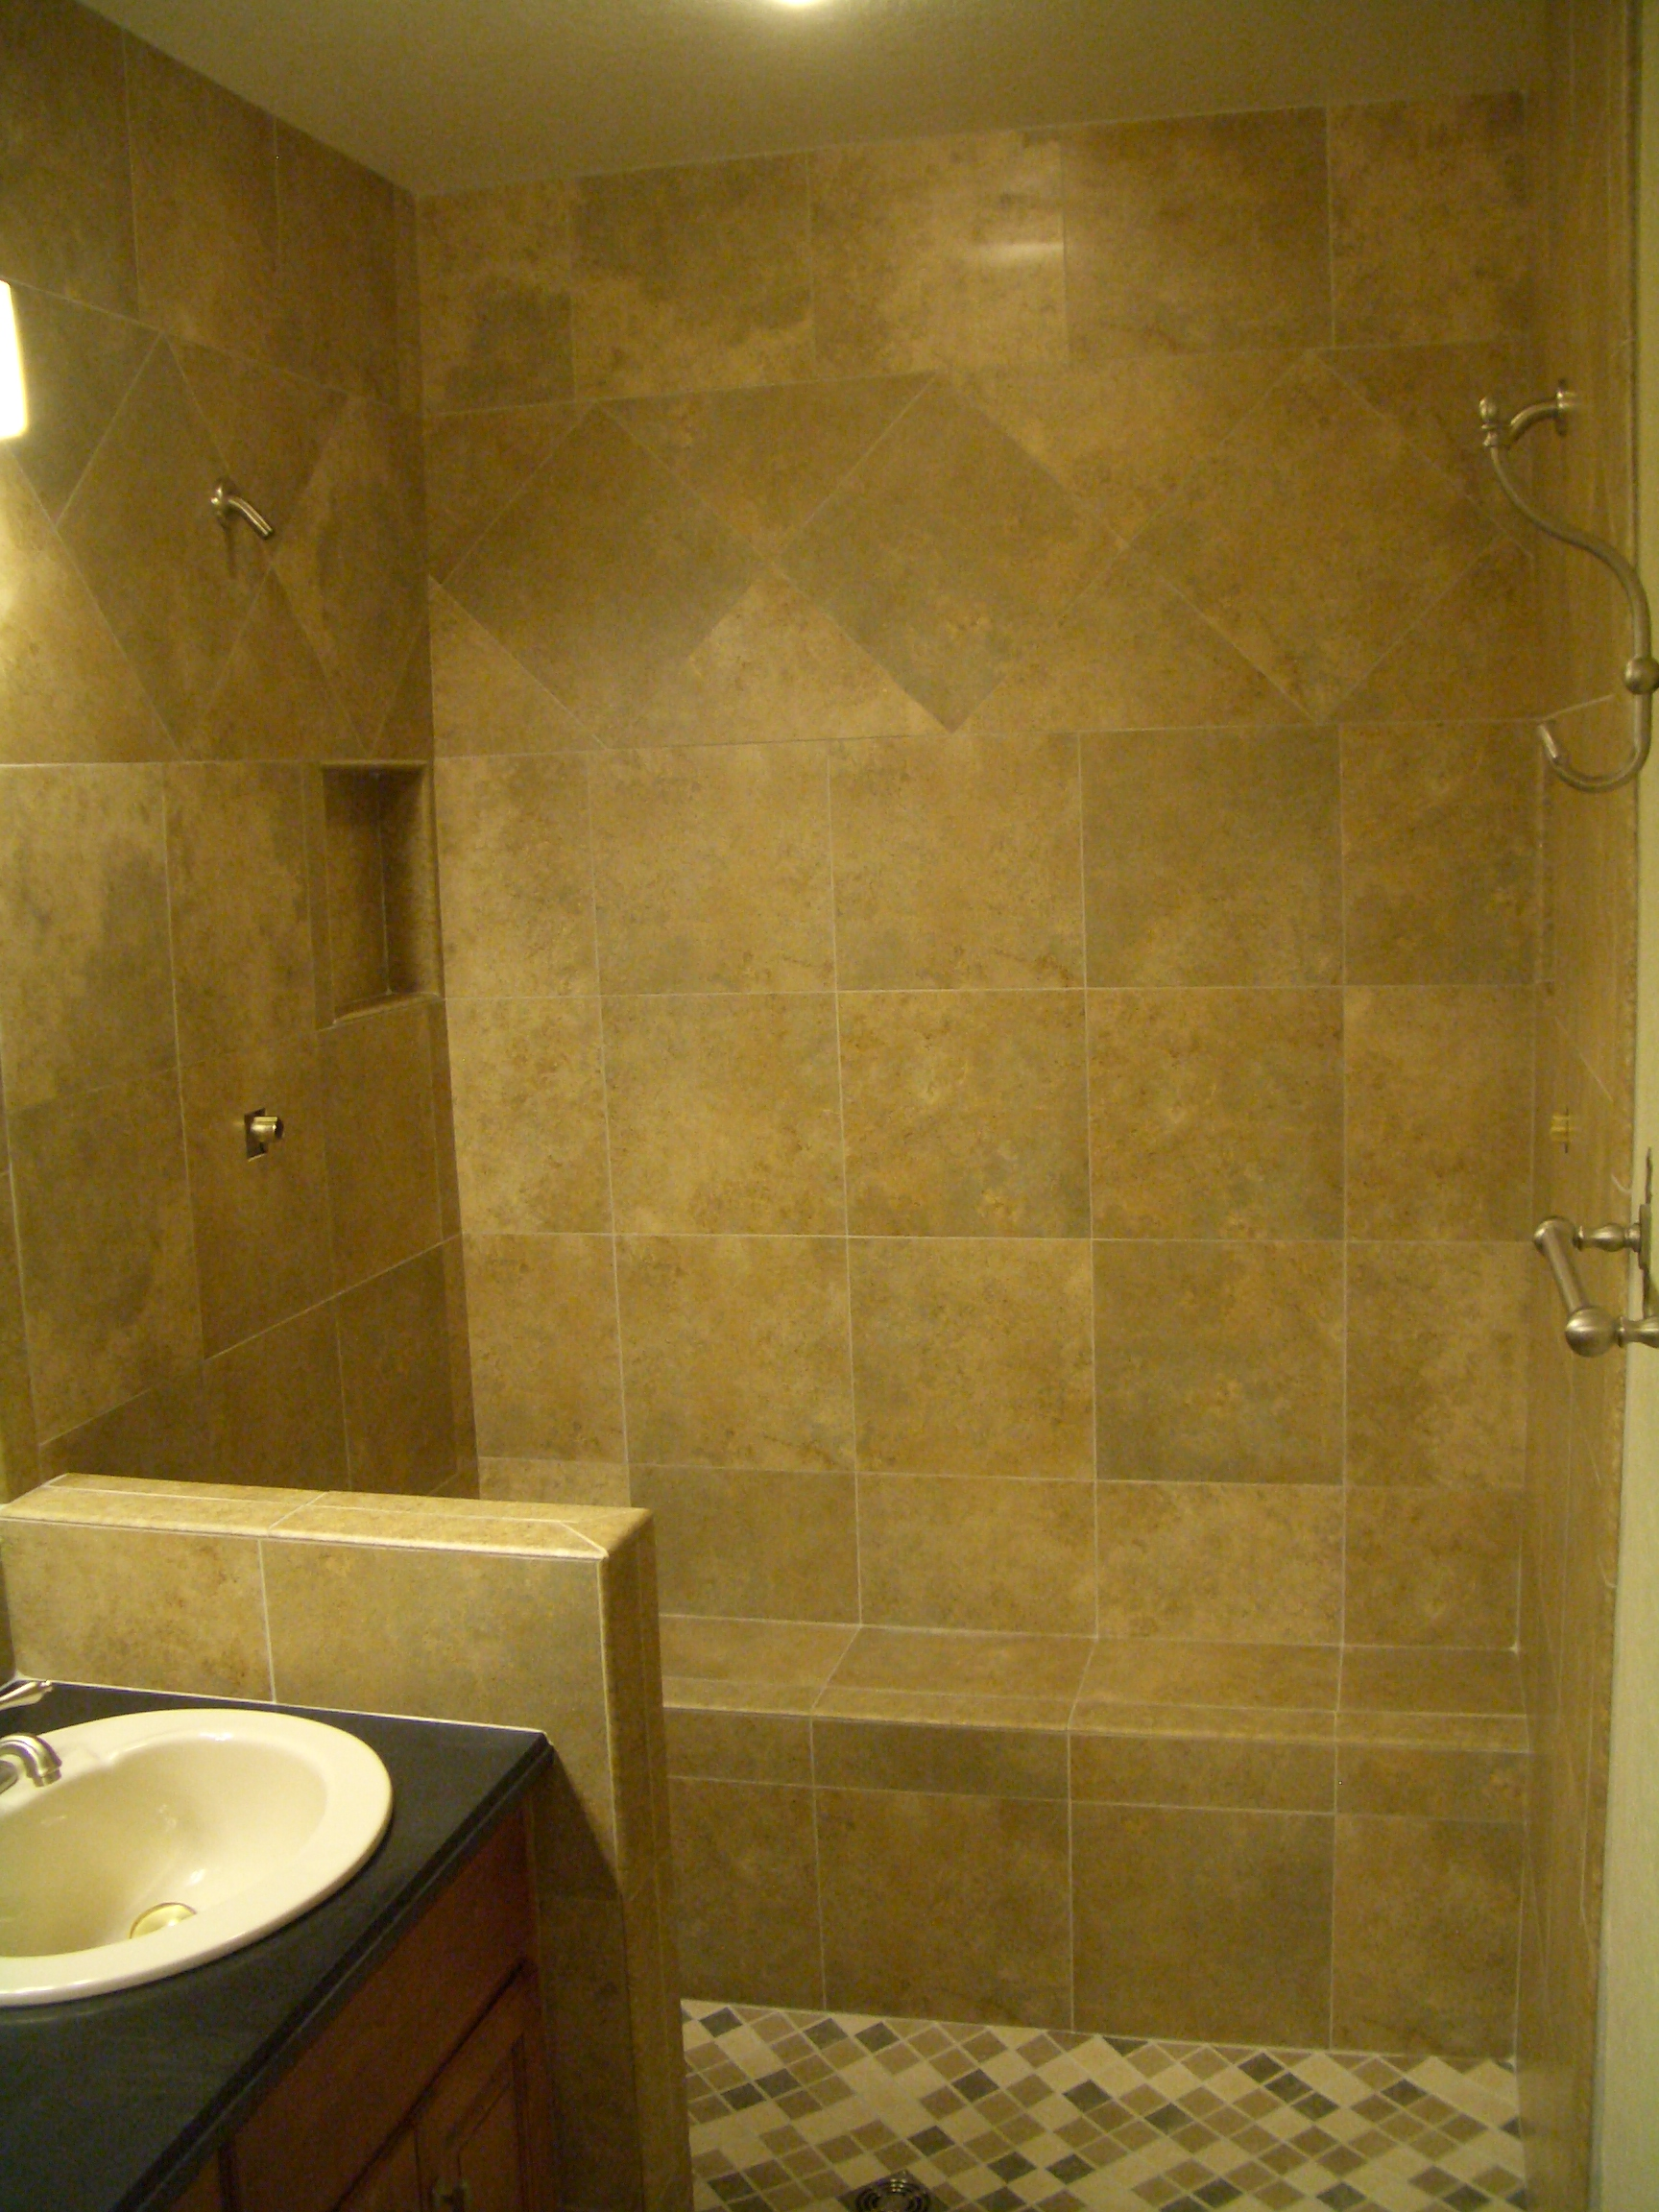 Full kerdi shower tile remodel in fort collins for Tiled bathroom designs pictures